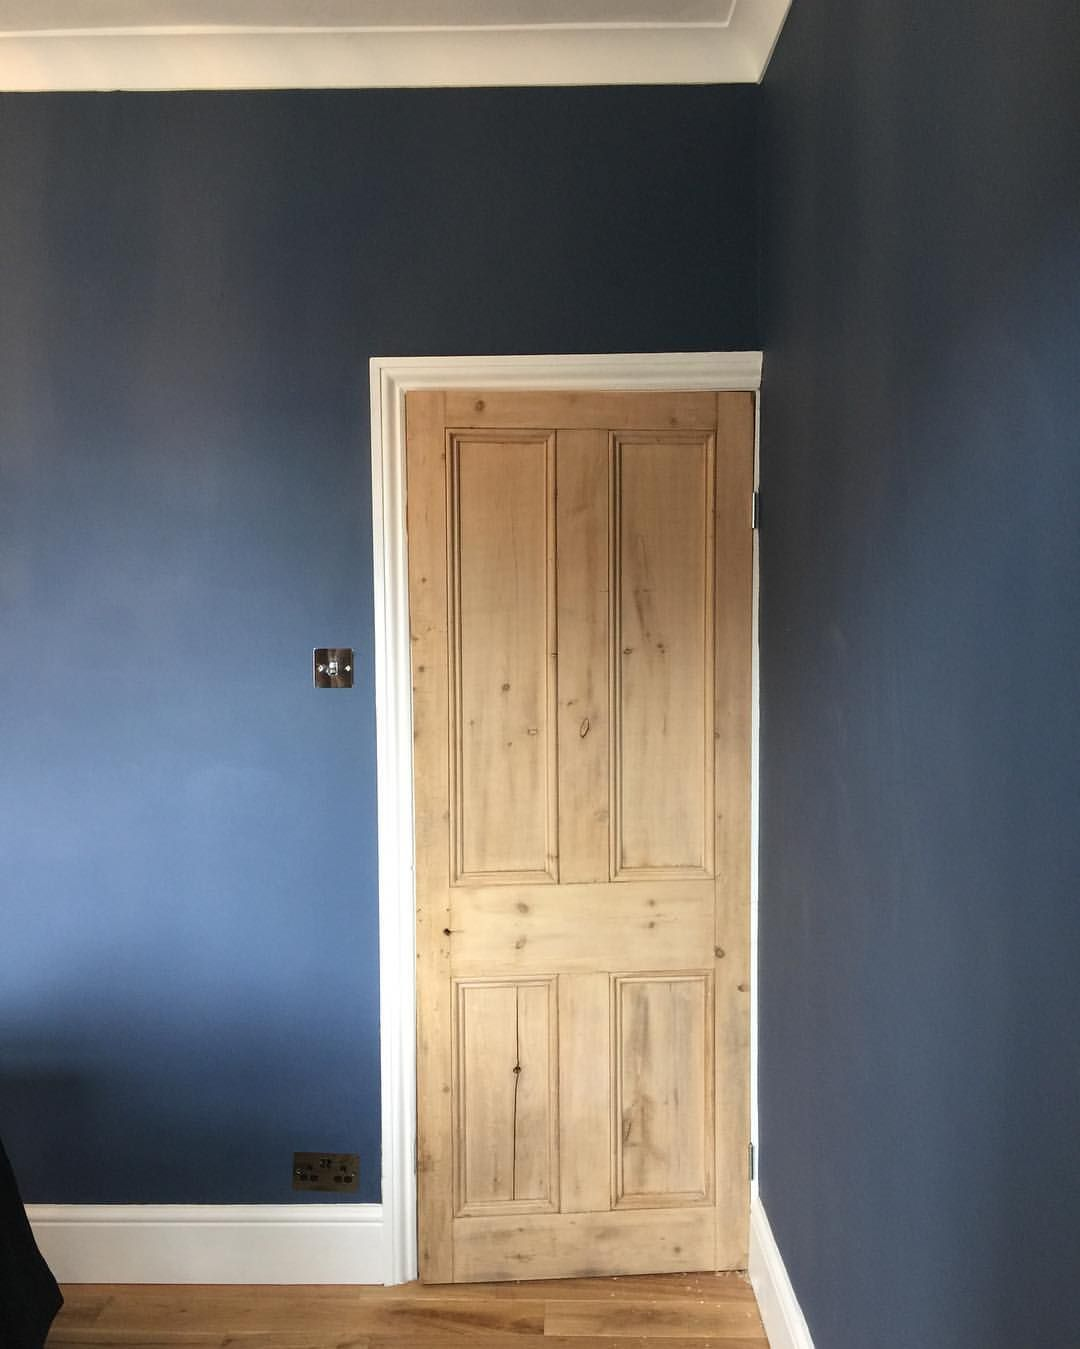 Natural wood door against white trim & walls | a c c e s s o r i e s ...